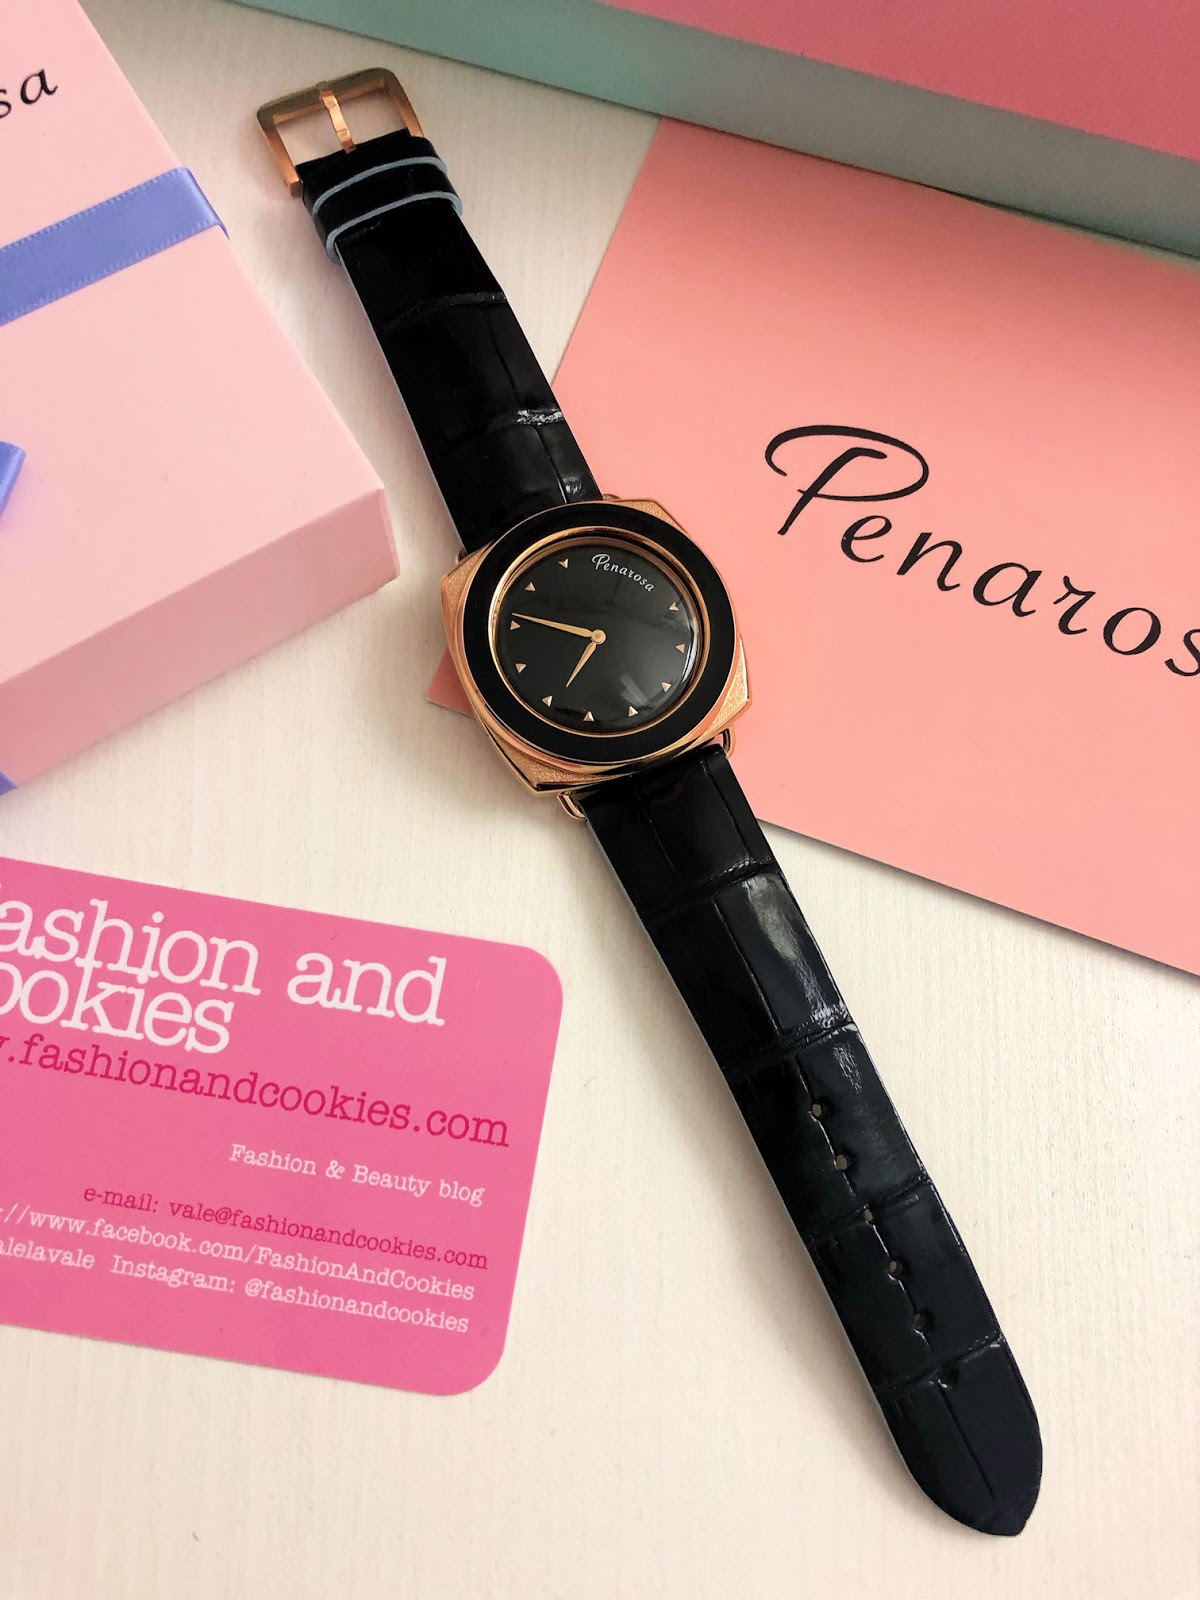 Penarosa watch on Fashion and Cookies fashion blog, fashion blogger style